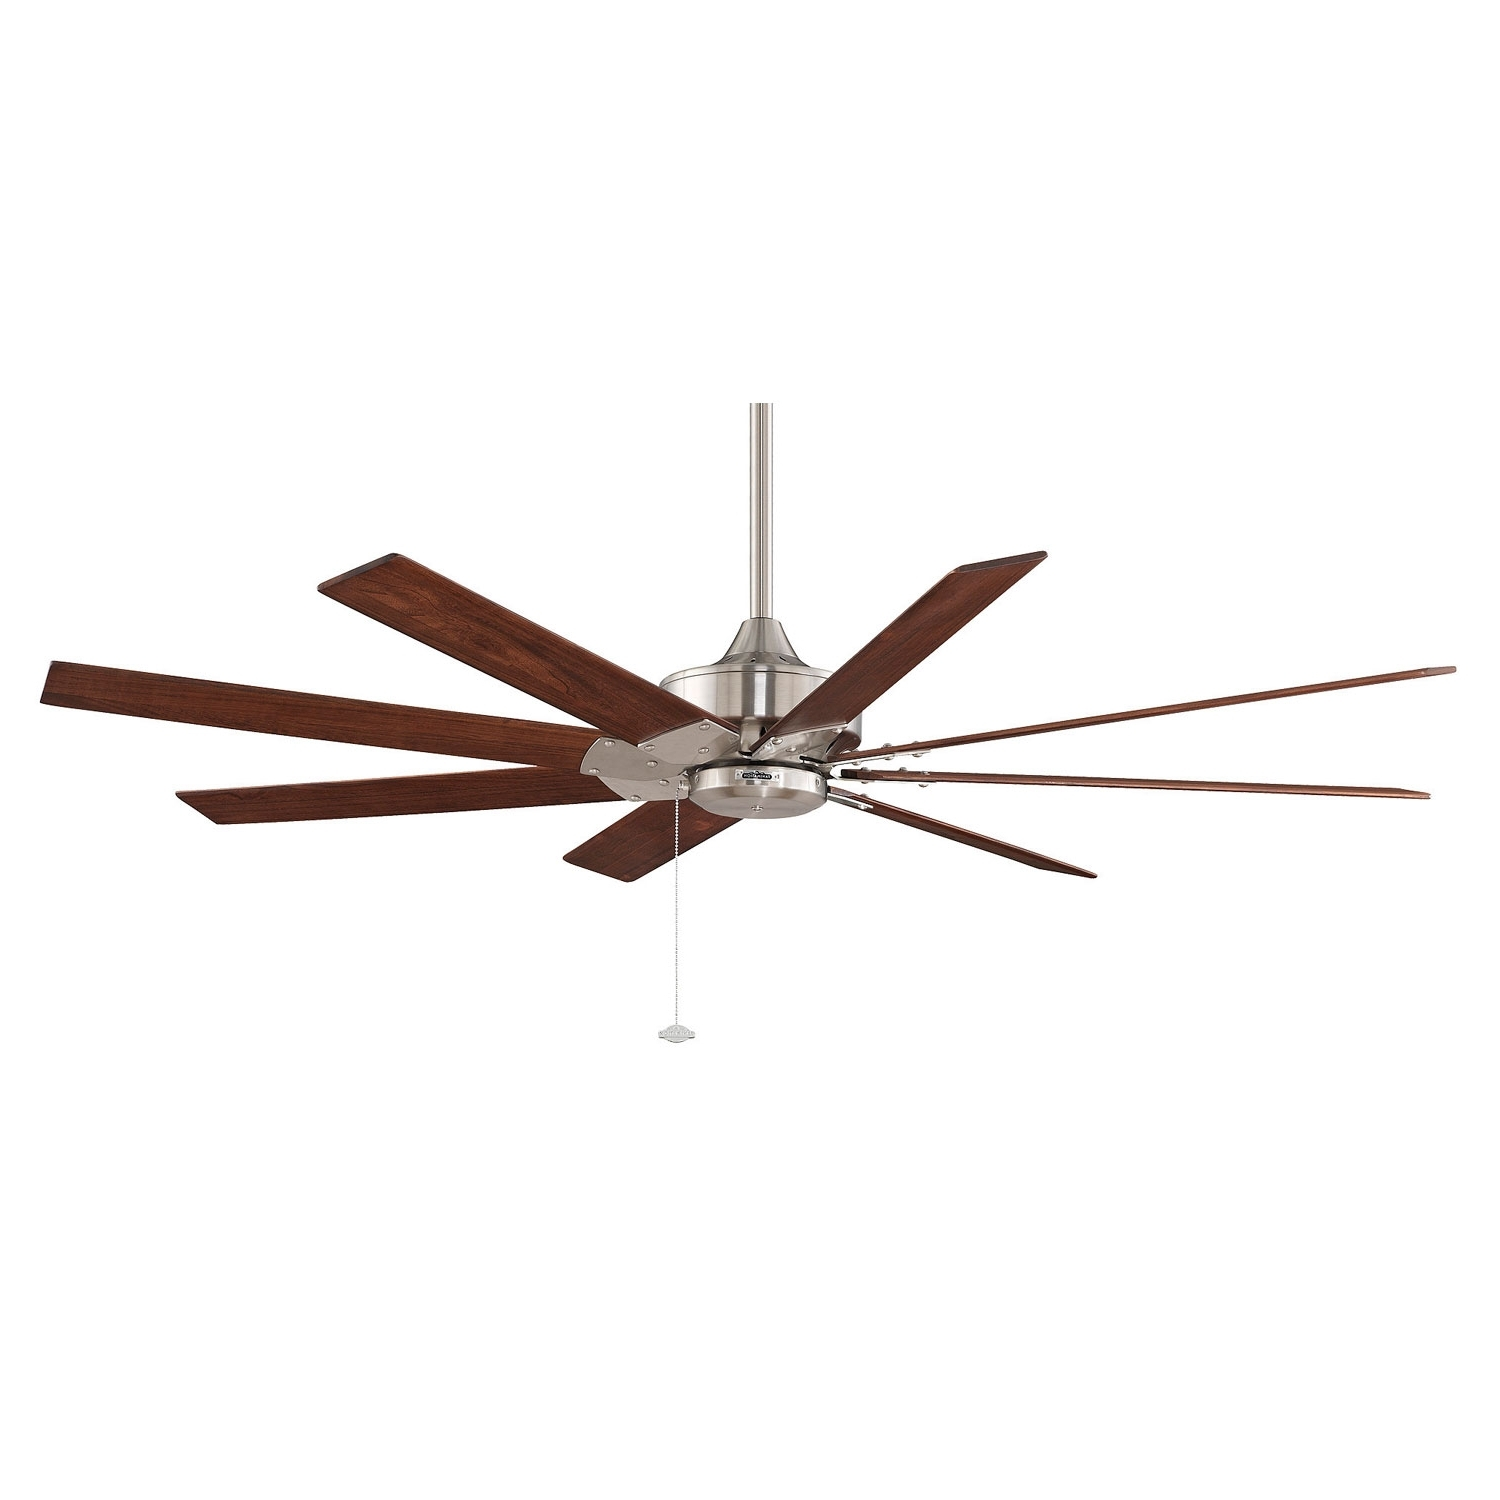 Nickel Outdoor Ceiling Fans Inside Well Known Fanimation Levon Brushed Nickel 63 Inch Energy Star Ceiling Fan With (View 15 of 20)